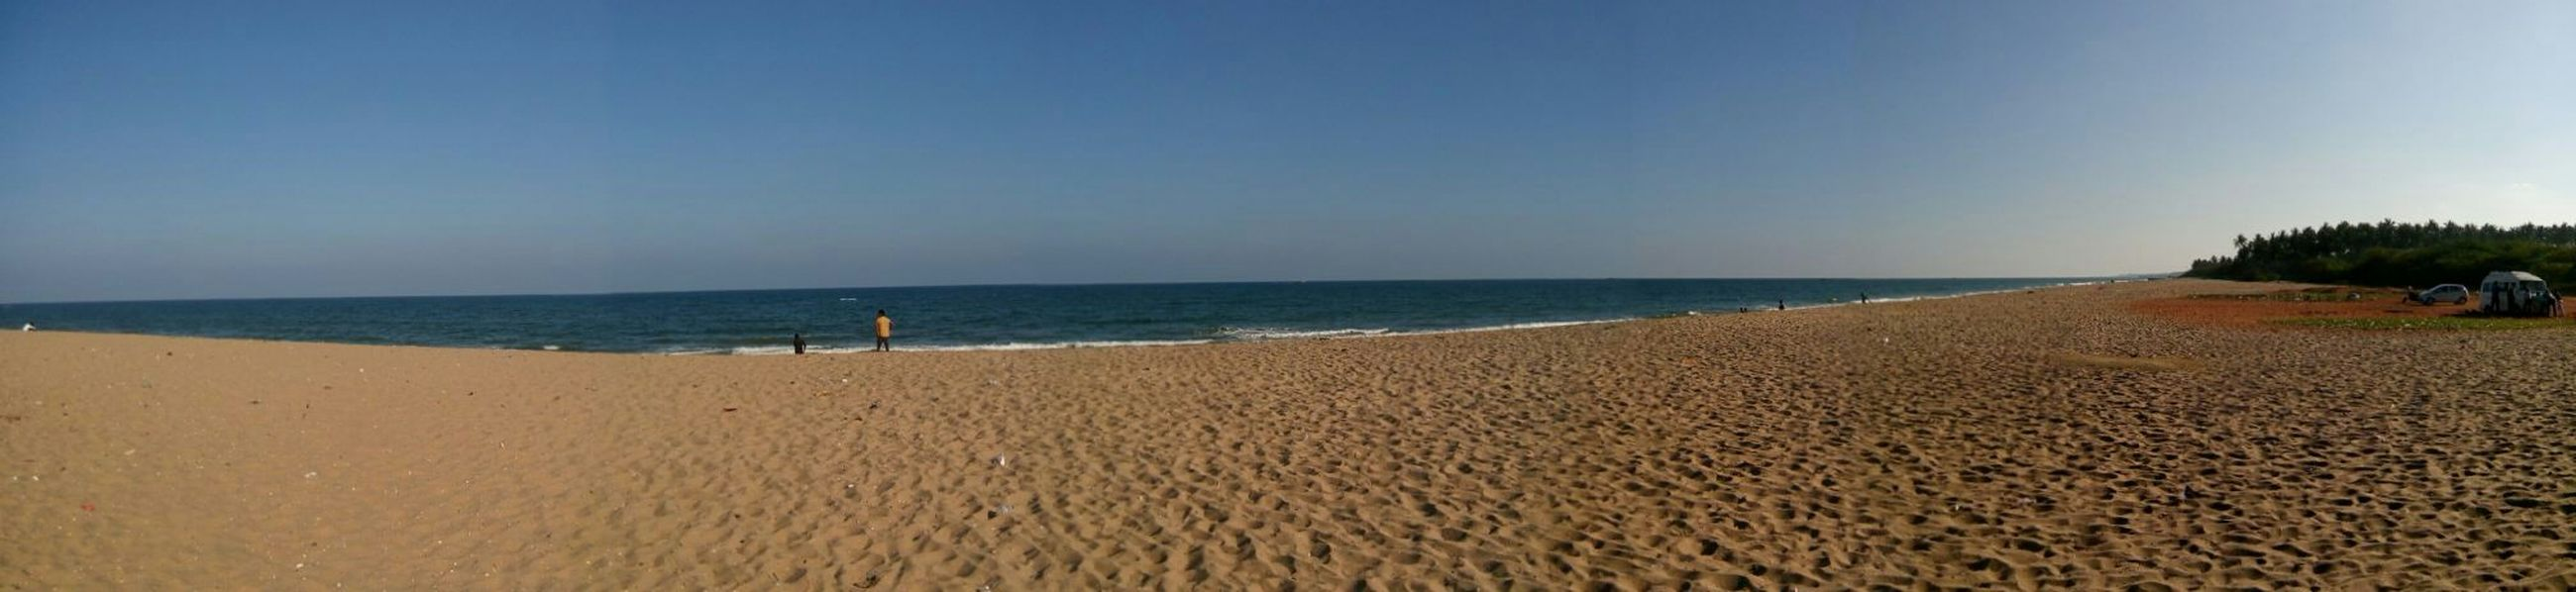 Panorama Panoramic Photography Travelphotography Enjoying Life Sand Beaches Are Cool ✌ Peace Beaches !